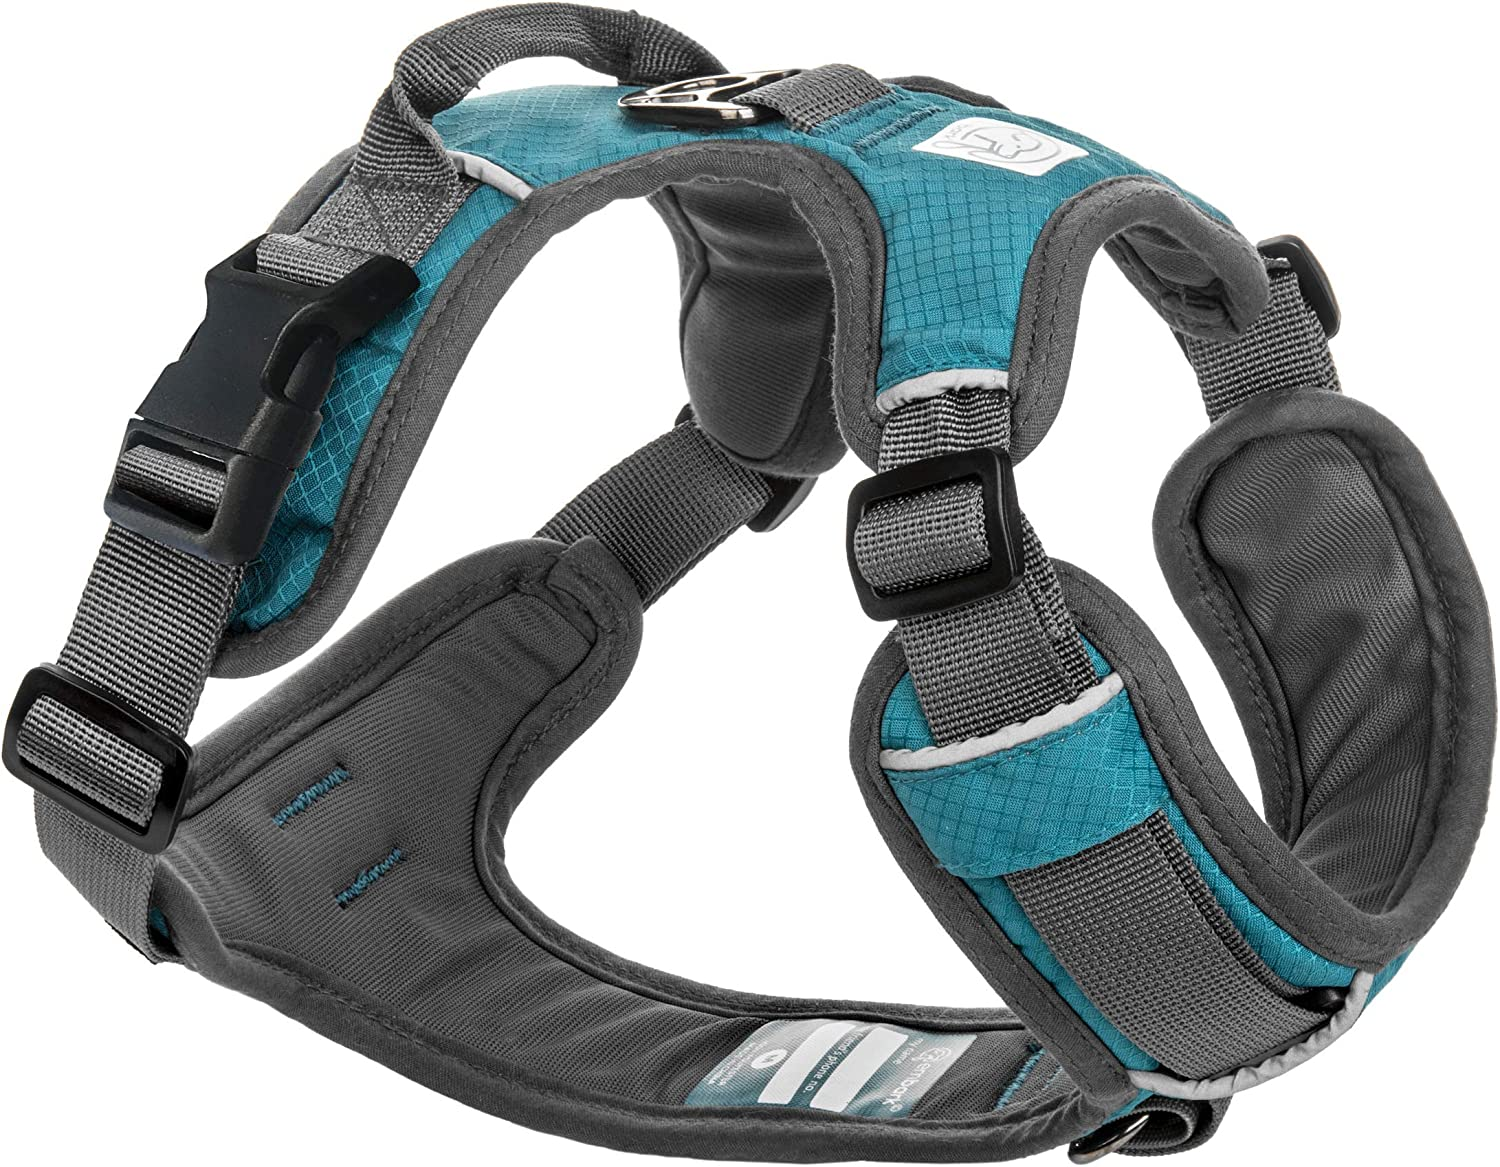 Top 10 Dog Harnesses | 2020 Updated Review 5